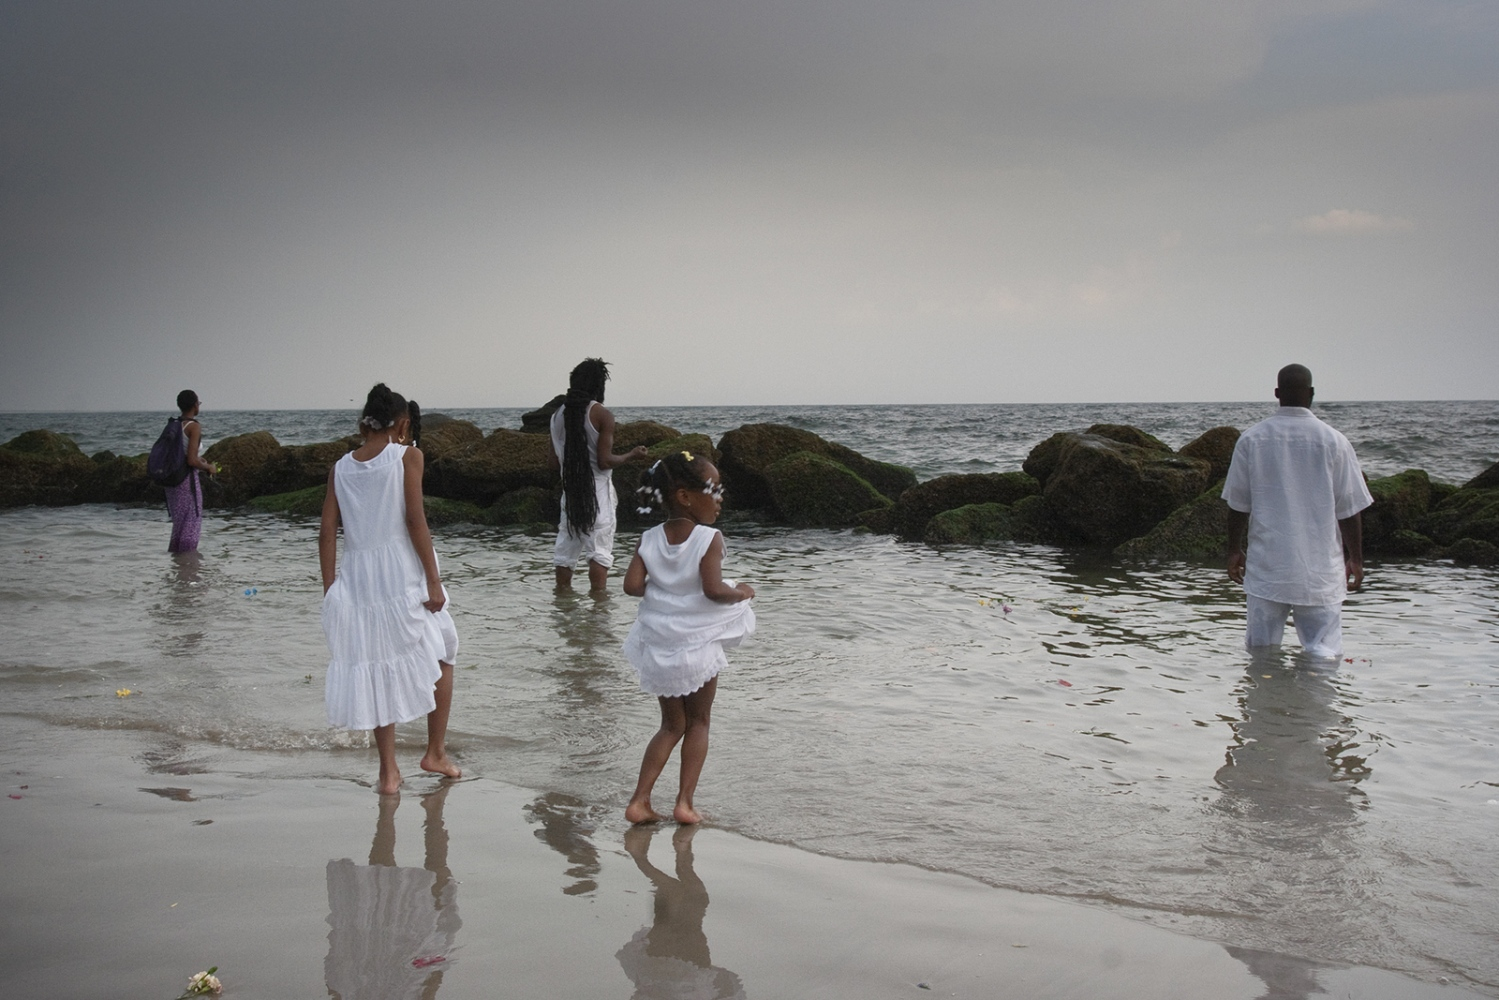 Art and Documentary Photography - Loading 23-michael-websterIMG_2700.jpg